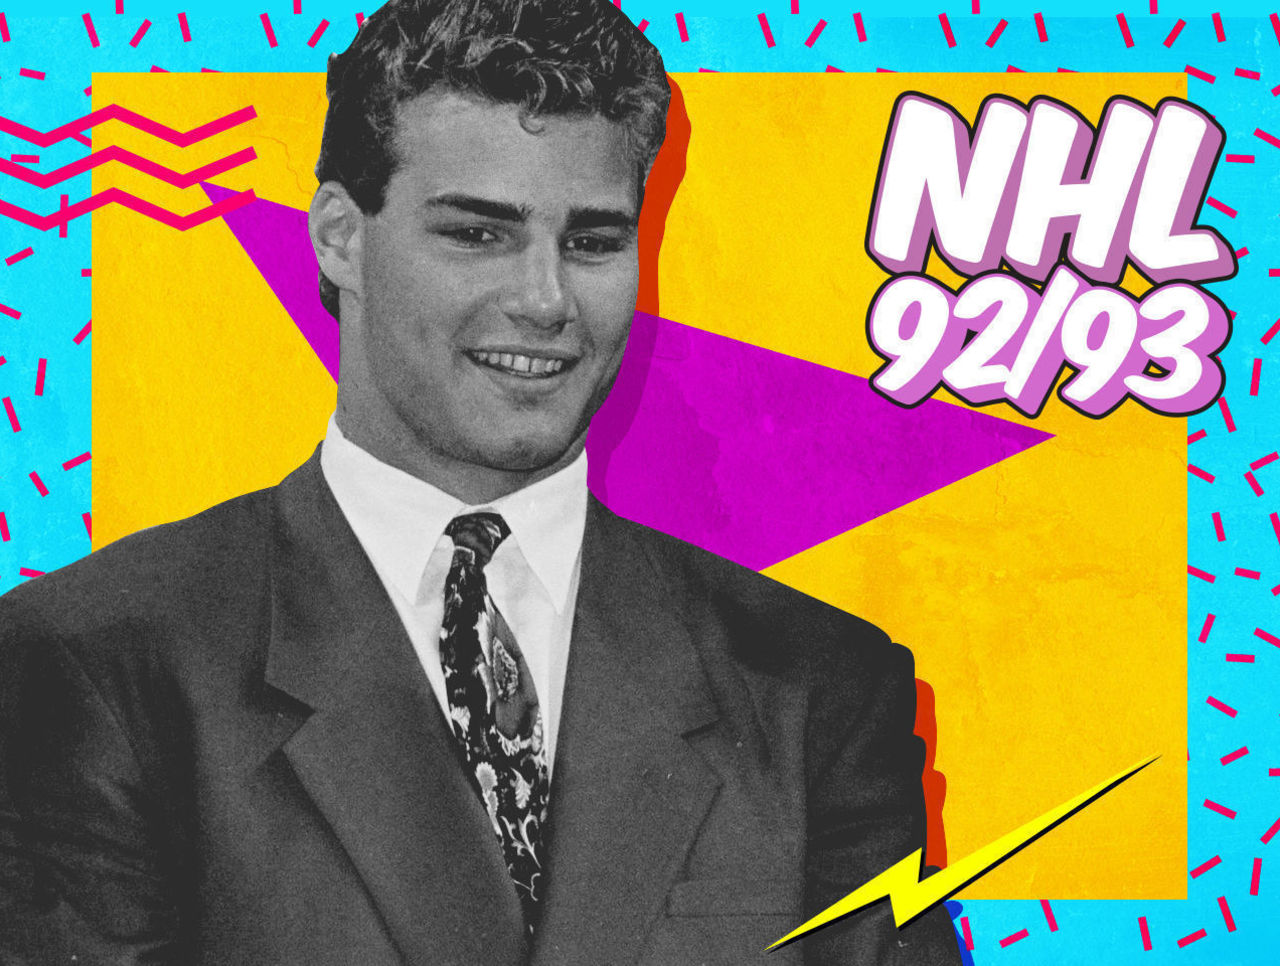 Cropped 90s image lindros